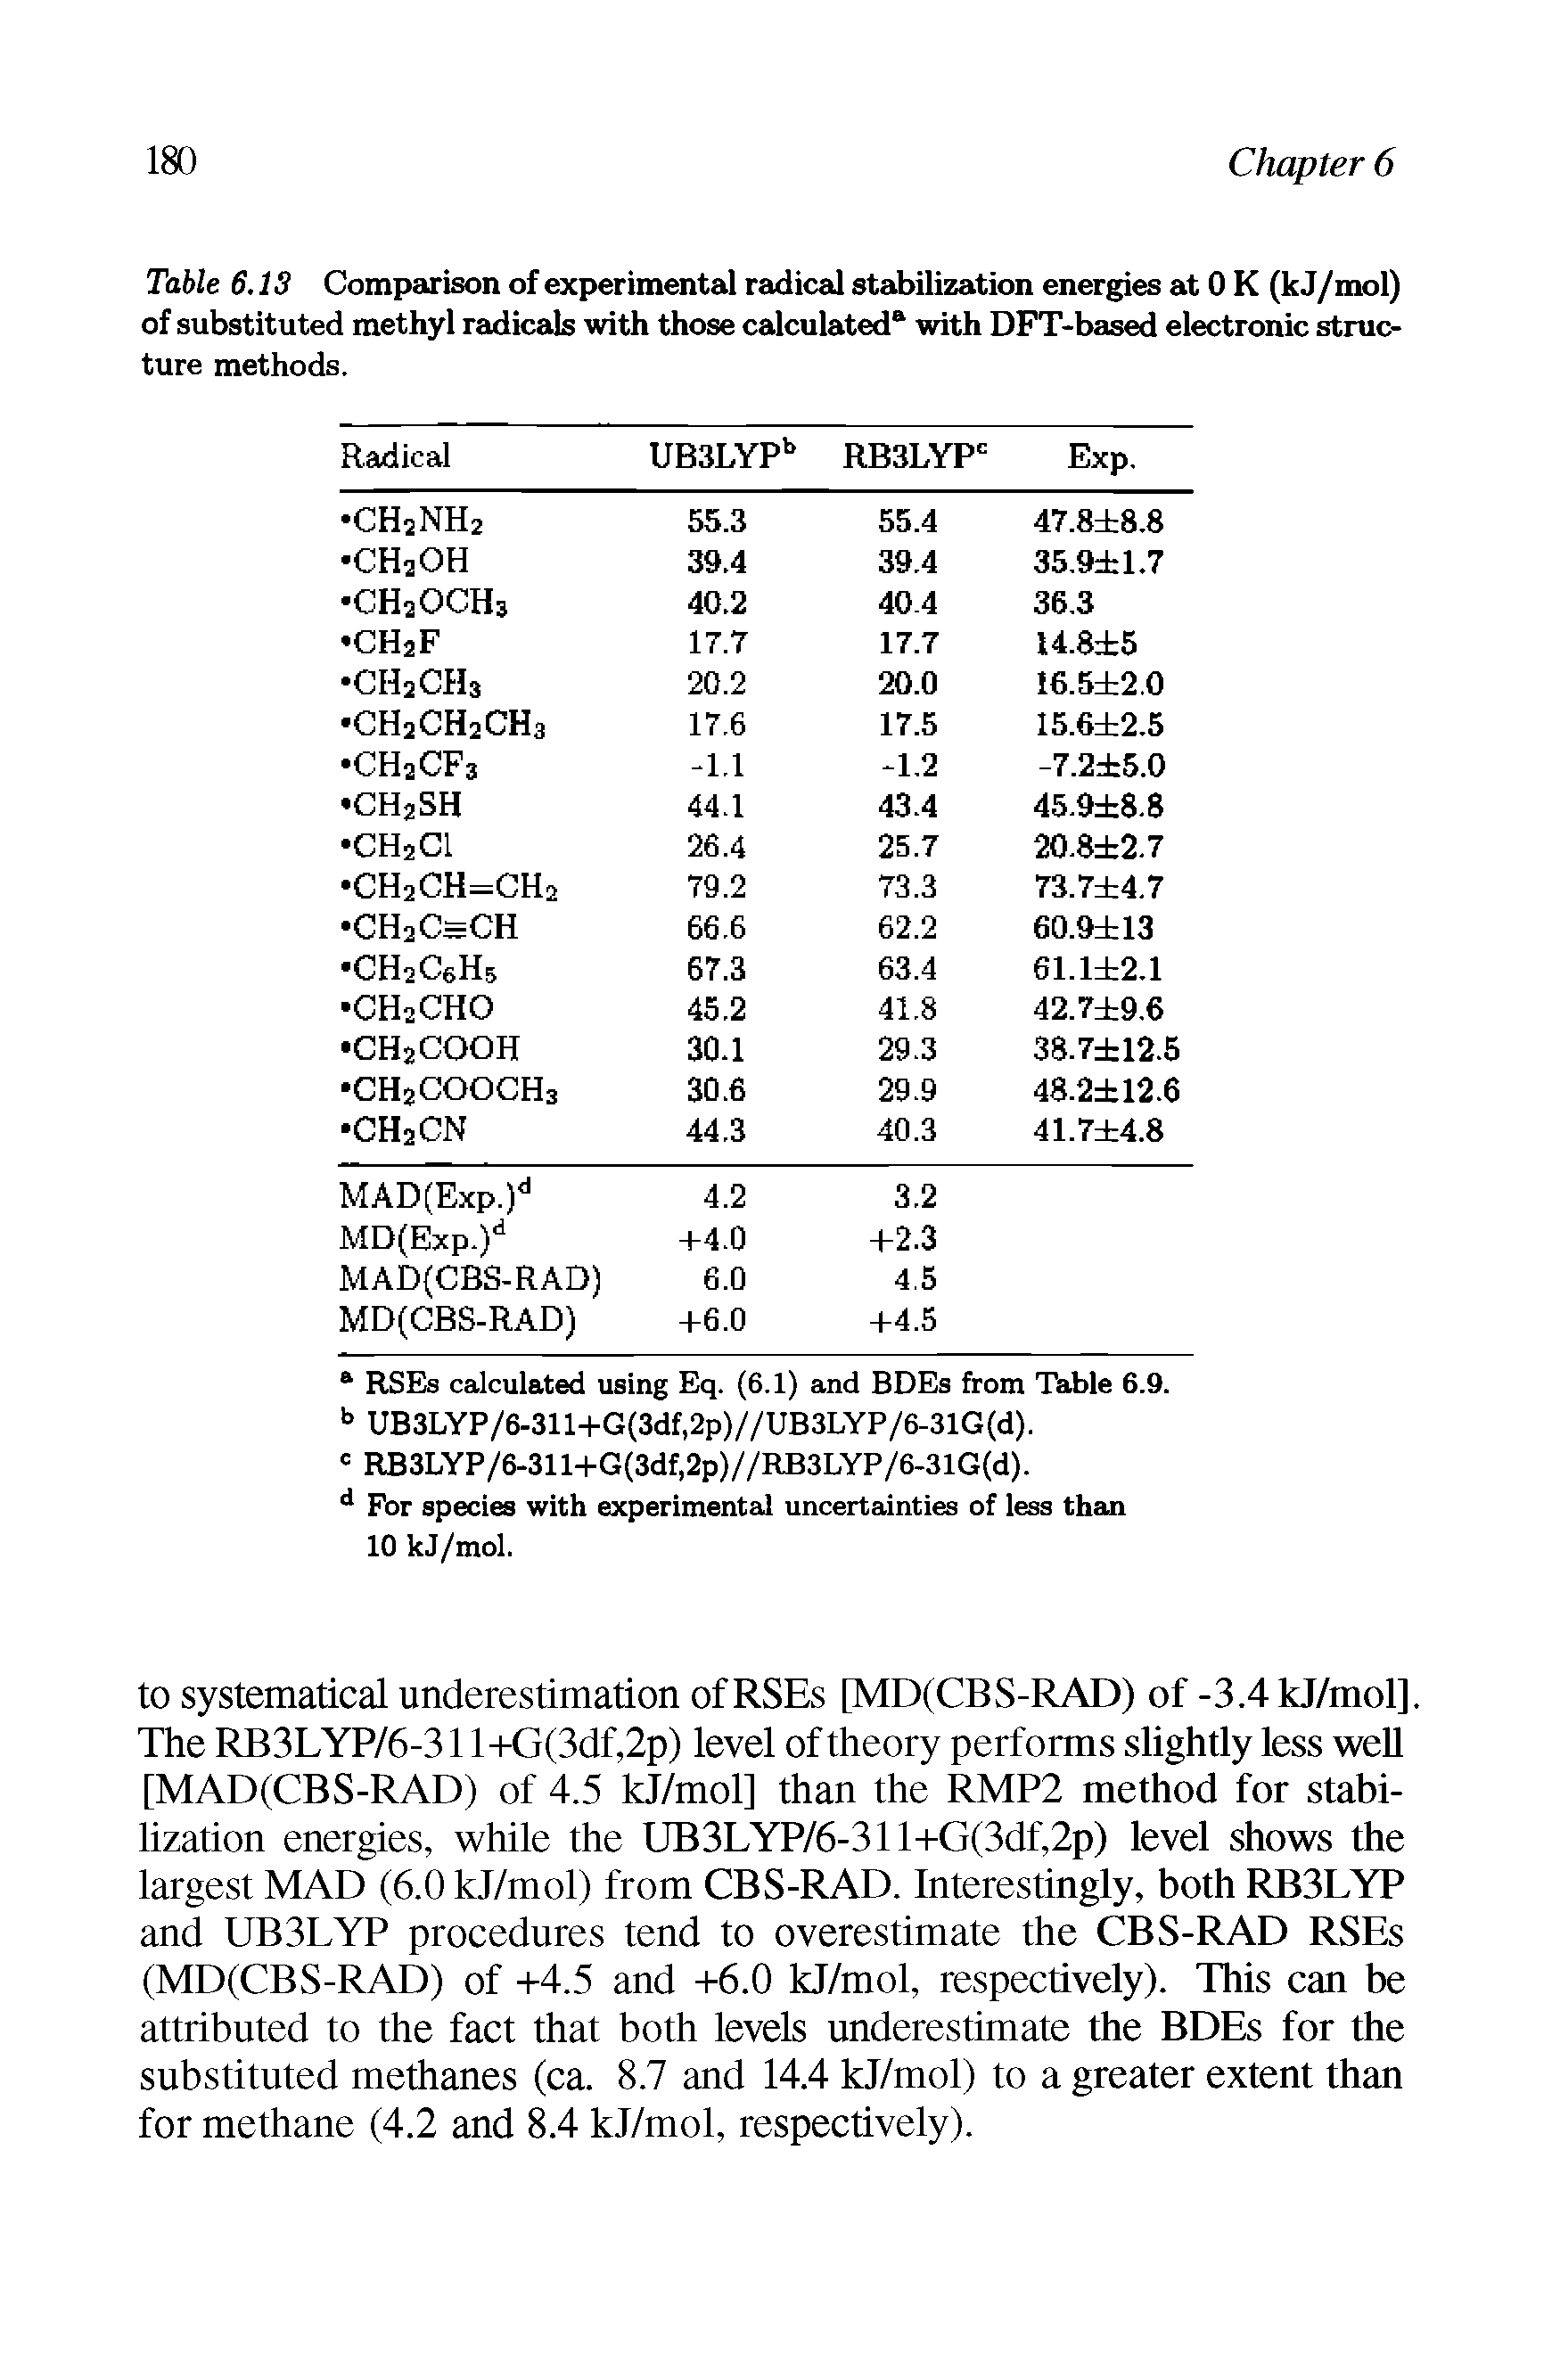 Table 6.13 Comparison of experimental radical stabilization energies at 0 K (k J/mol) of substituted methyl radicals with those calculated with DFT-based electronic structure methods.